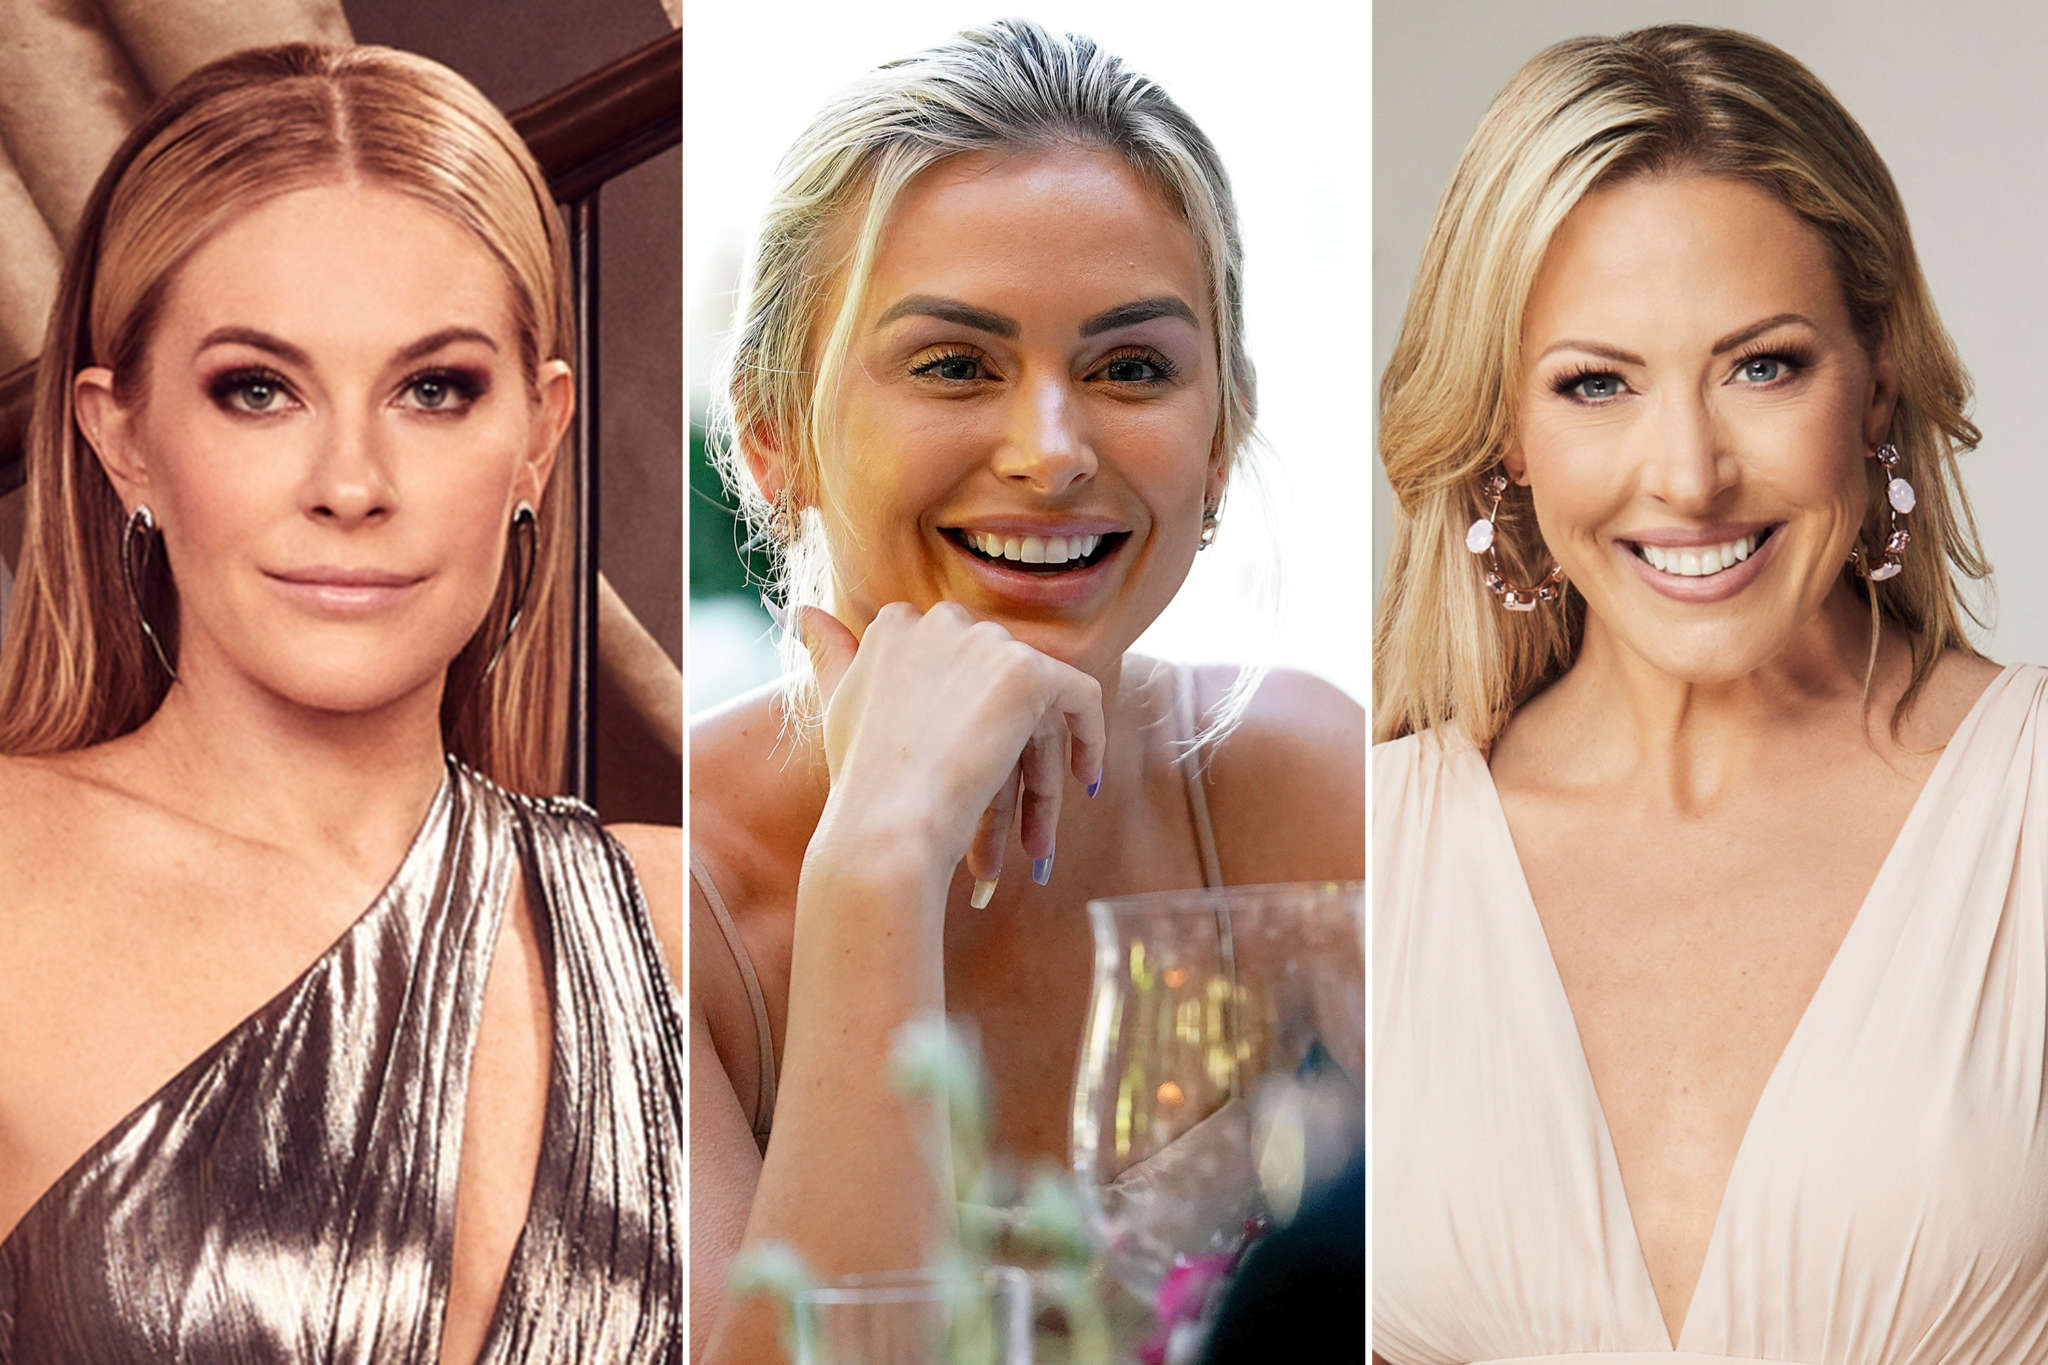 bravo-stars-leah-mcsweeney-braunwyn-windham-burke-and-lala-kent-all-talk-sobriety-in-new-interview